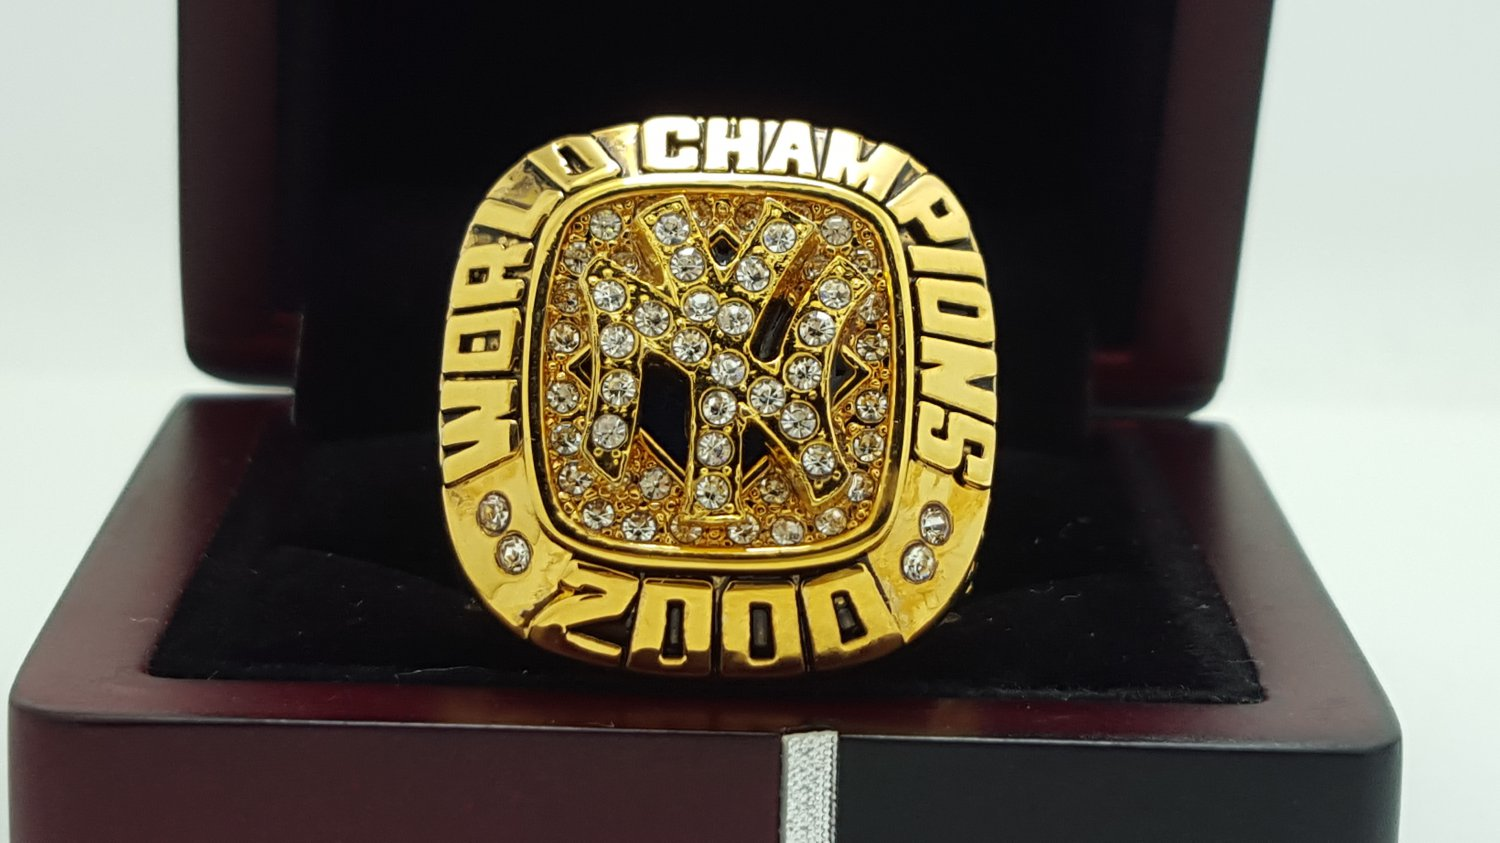 2000 New York Yankees world series Championship Ring Name Jeter 11 Size With wooden box